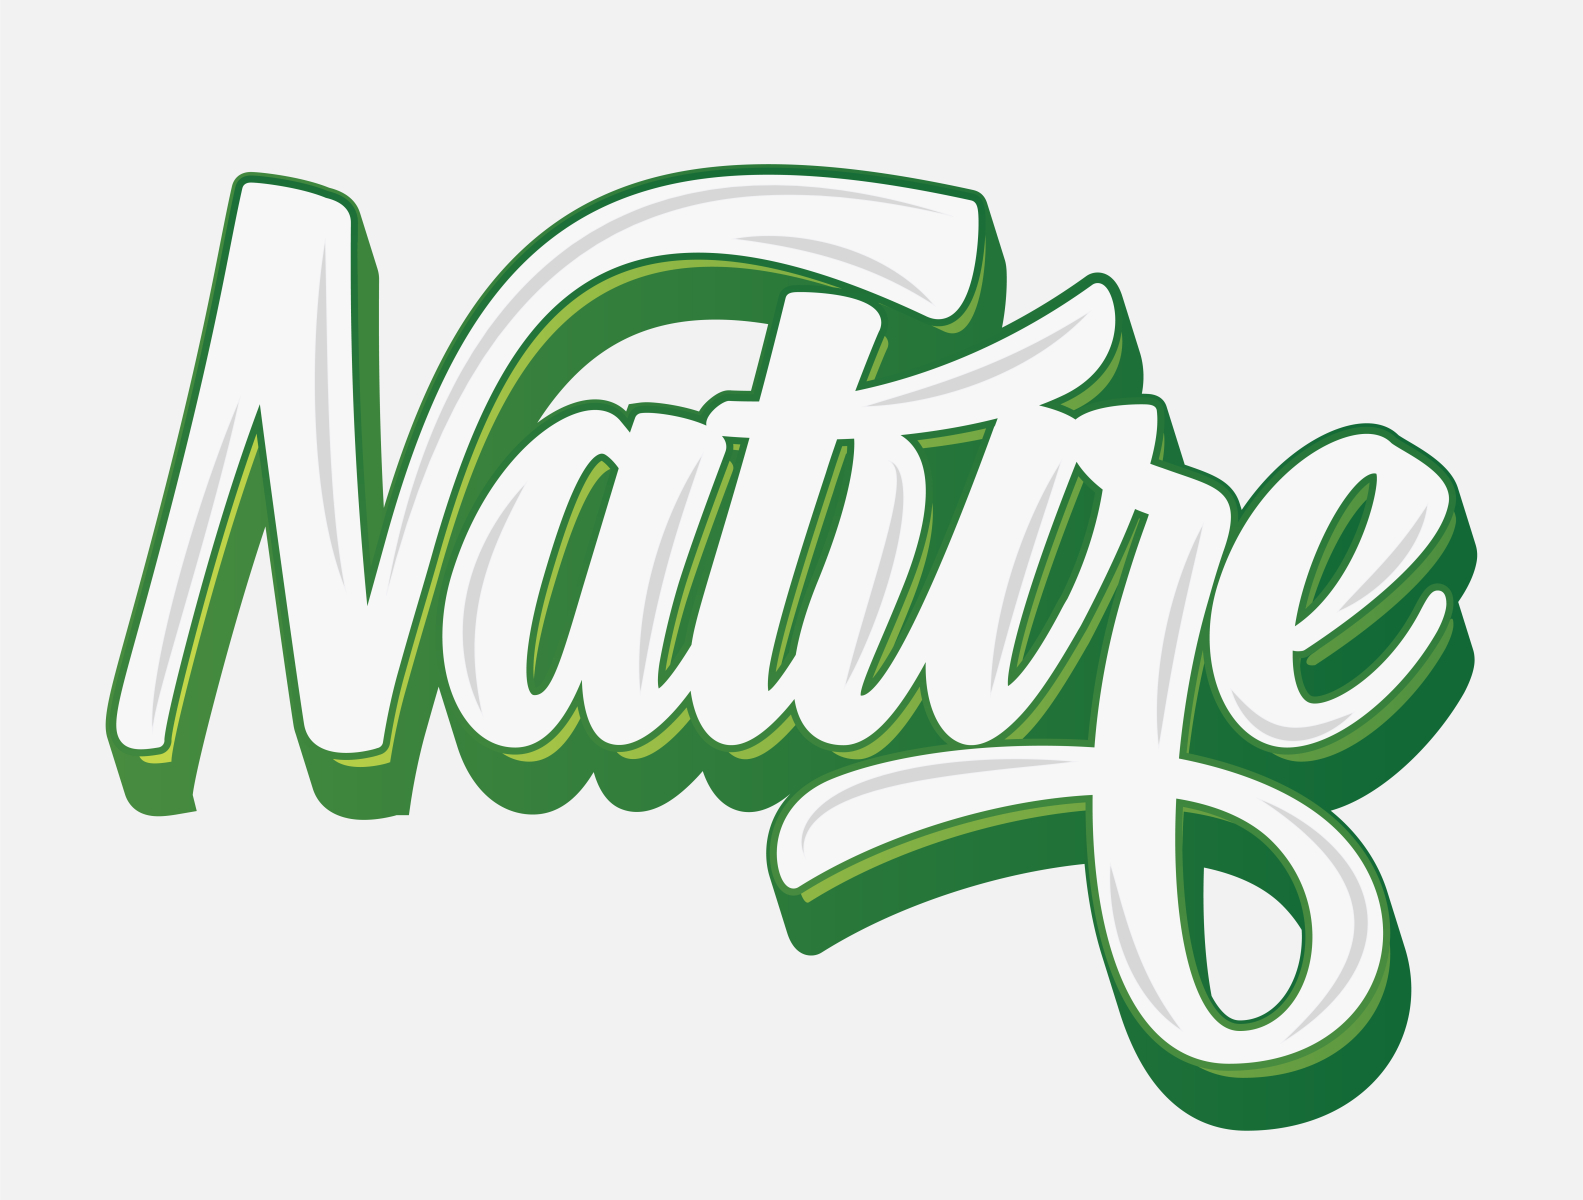 Nature Typography Logo Design By Shaheen Ahmed On Dribbble,Typography Logo Design Inspiration